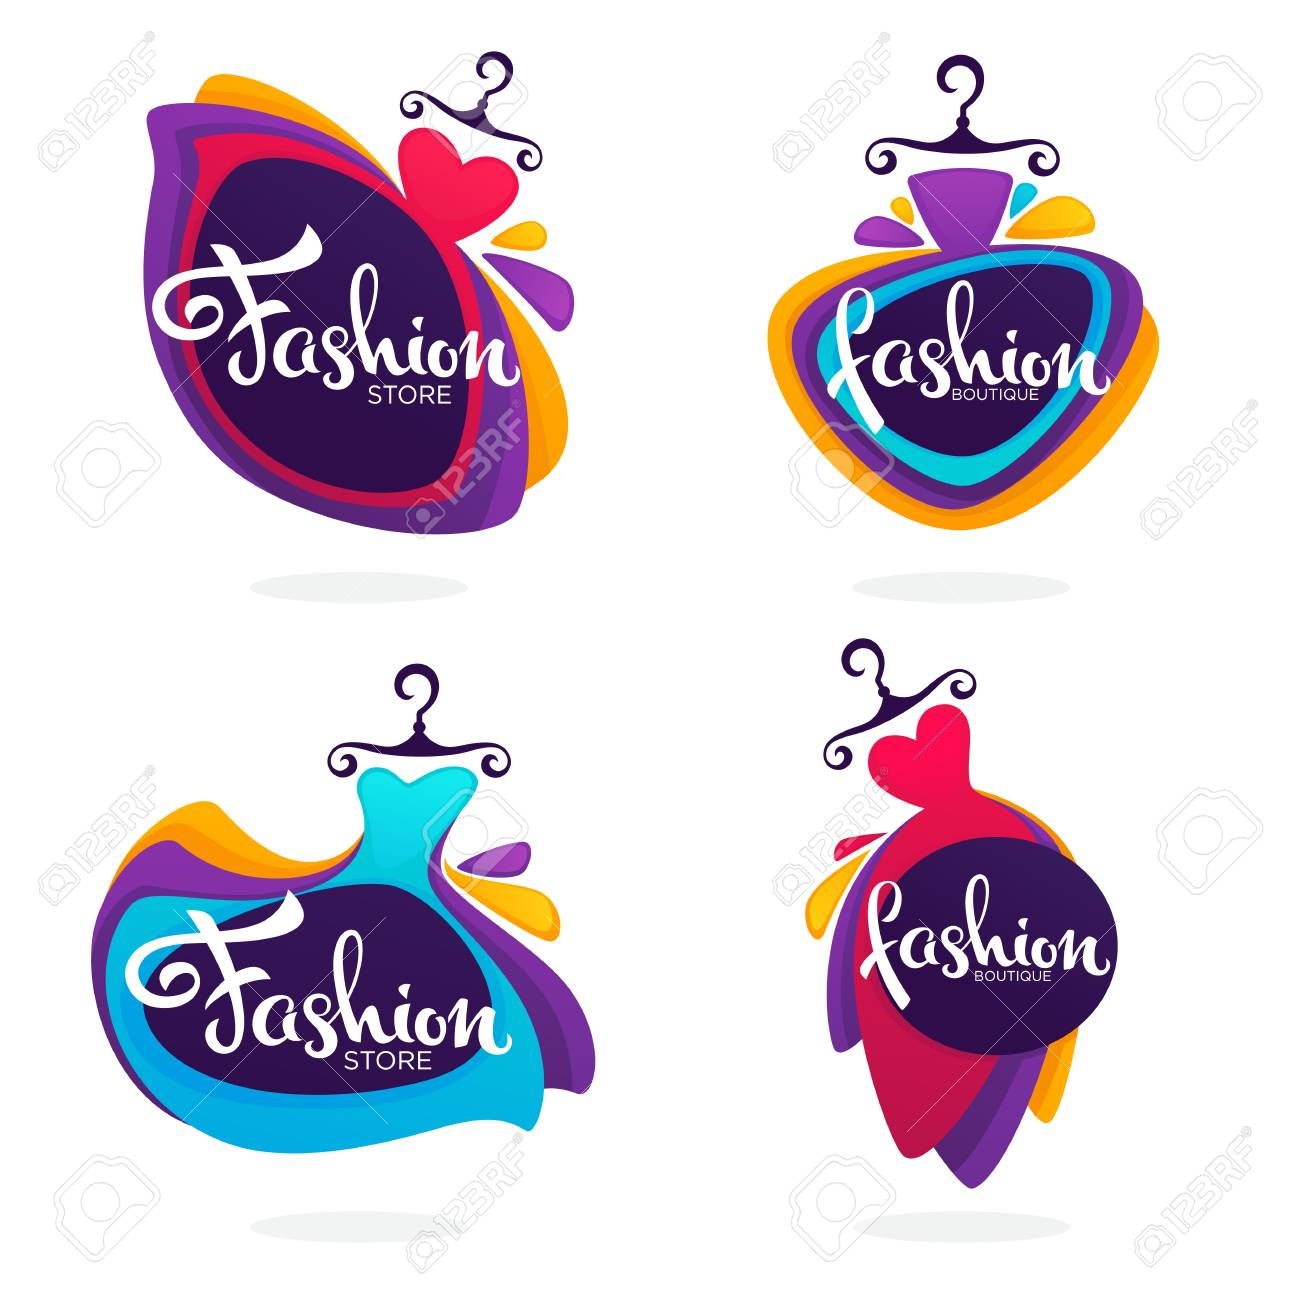 Vector collection of fashion boutique and store logo, label, emblems with bright baloon dresses and lettering composition - 92919936